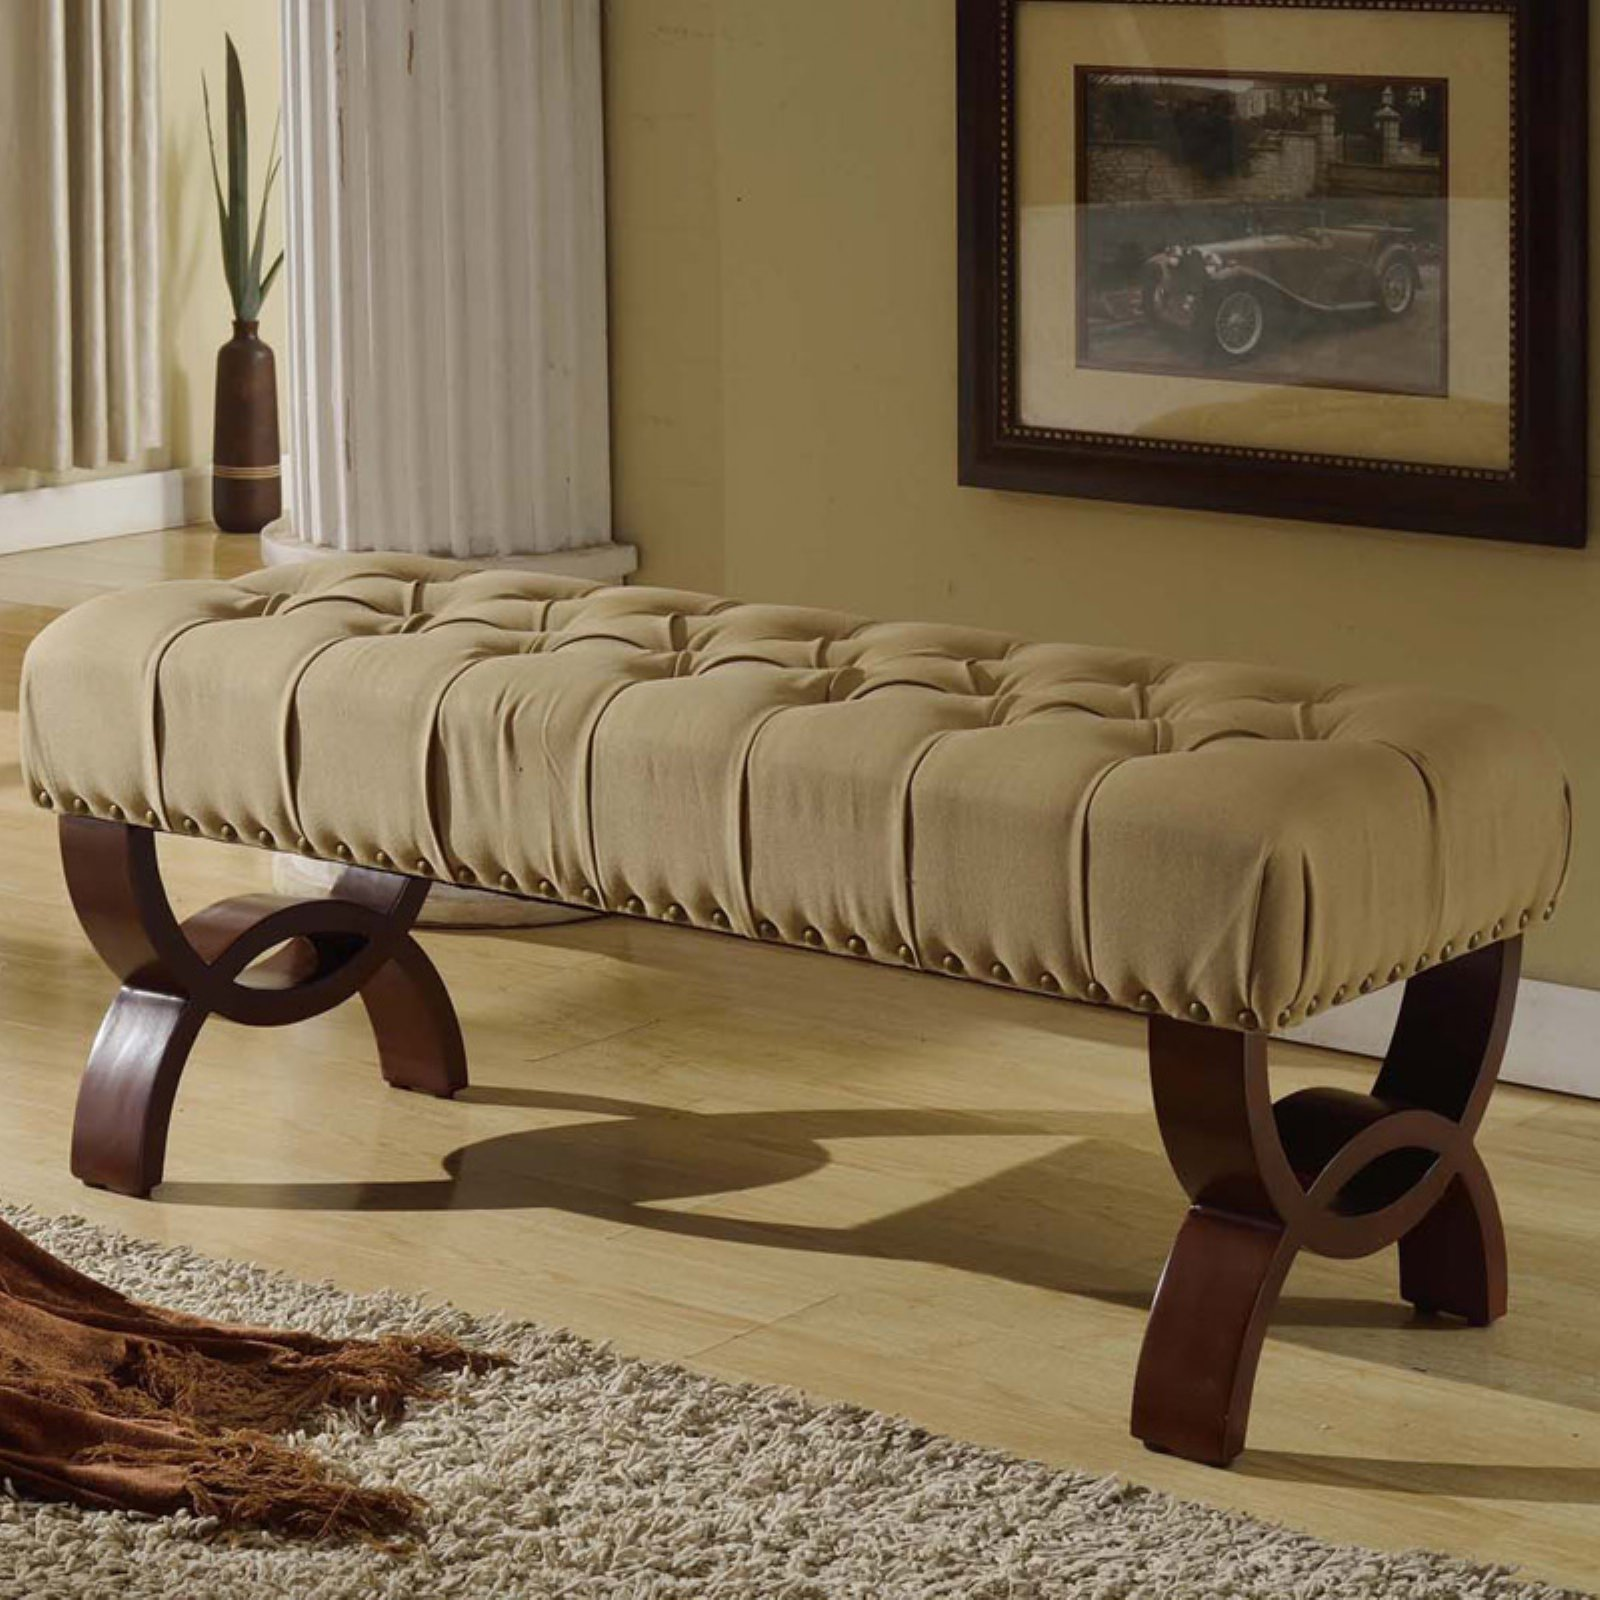 HomePop Carolina Tufted Bench With Nailhead Trim, Neutral